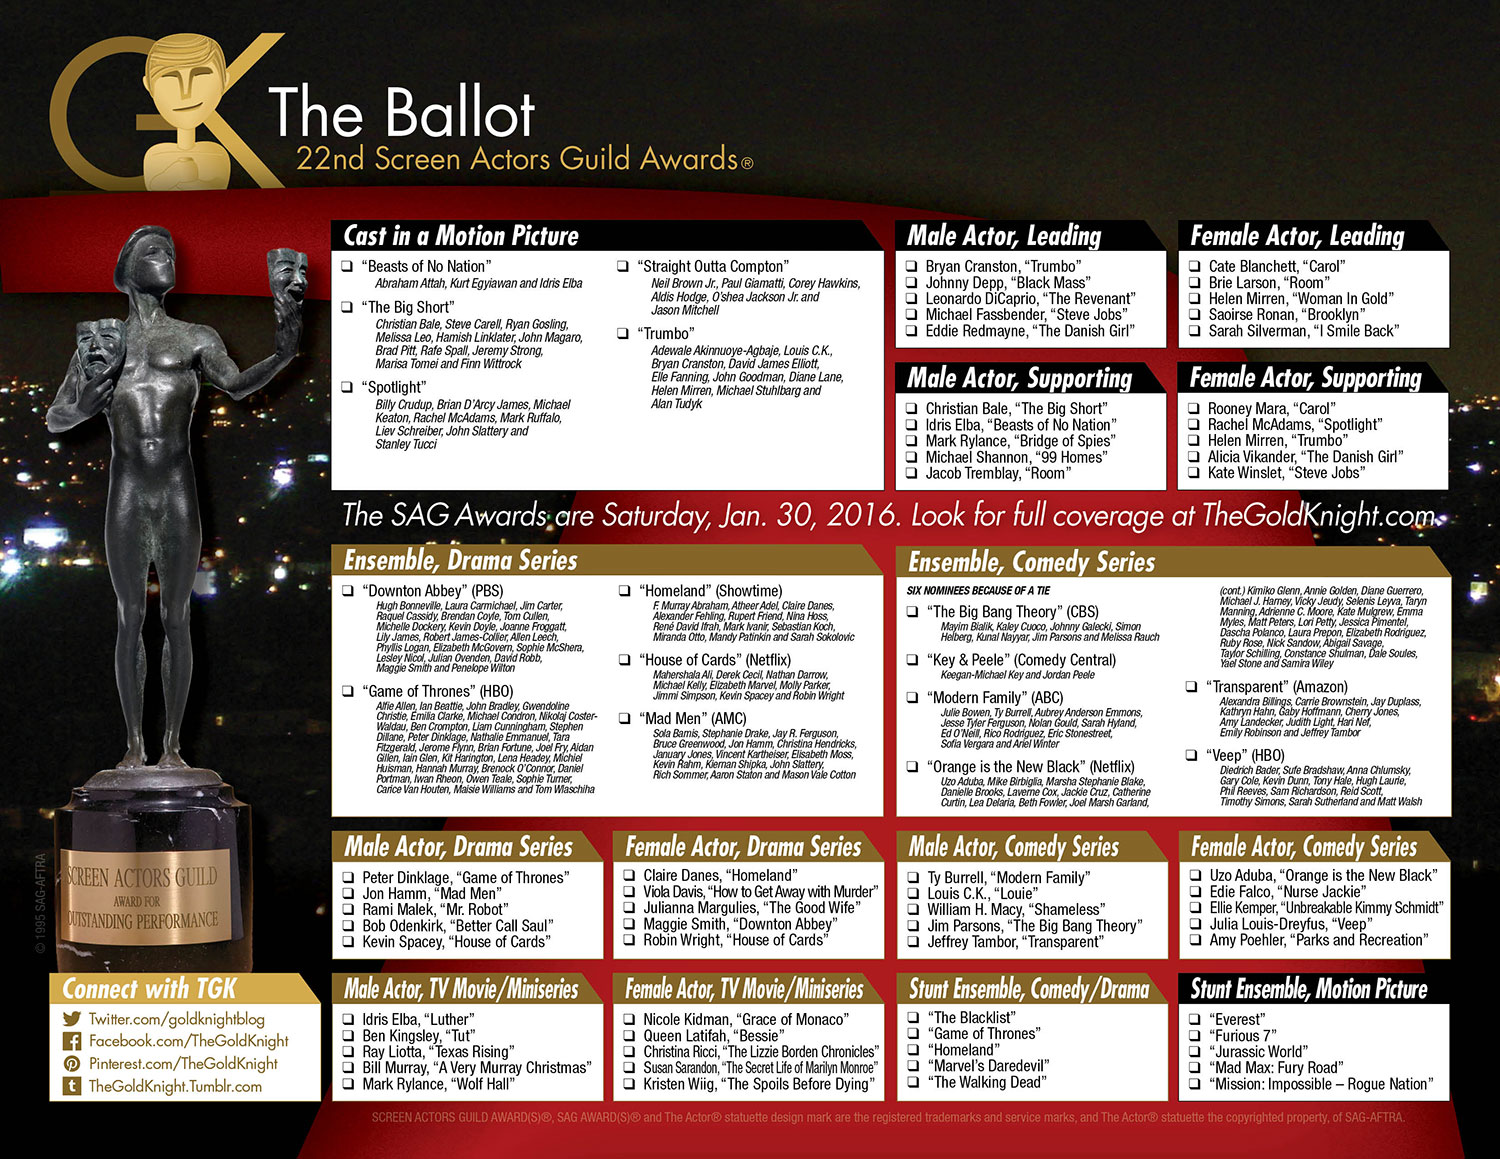 Printable Oscar Ballot besides 72038 100 Greatest Rock Tambourine Players together with Ct Oscars 2017 Ballot 20170224 Htmlstory additionally  further 2015 Golden Globe Awards Printable Ballot. on oscar ballot 2017 pdf